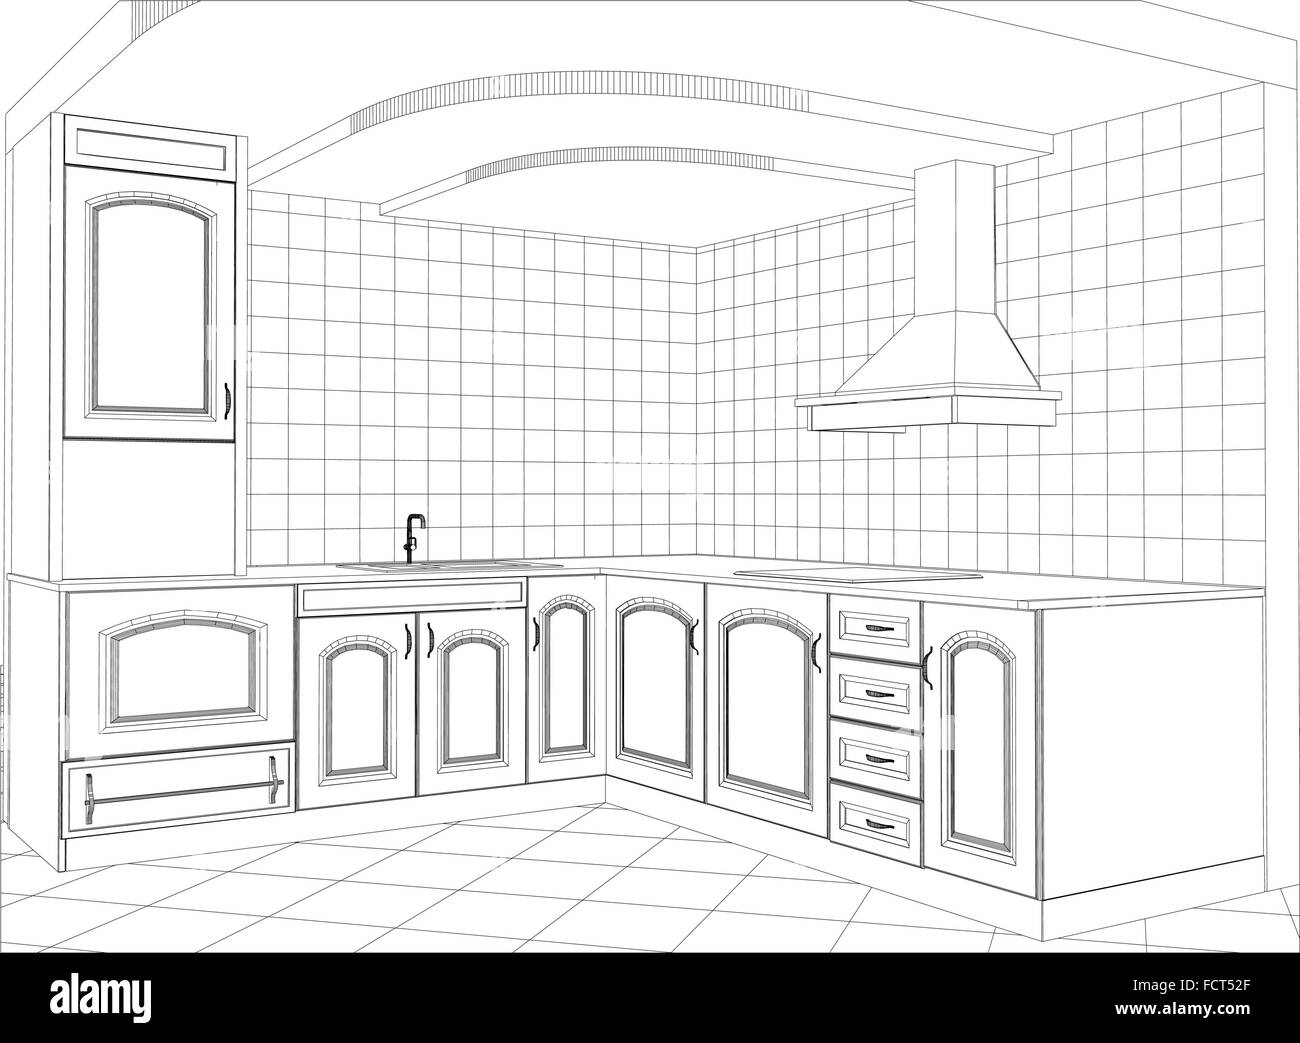 Facade Kitchen Vector Sketch Interior Illustration Created Of 3d